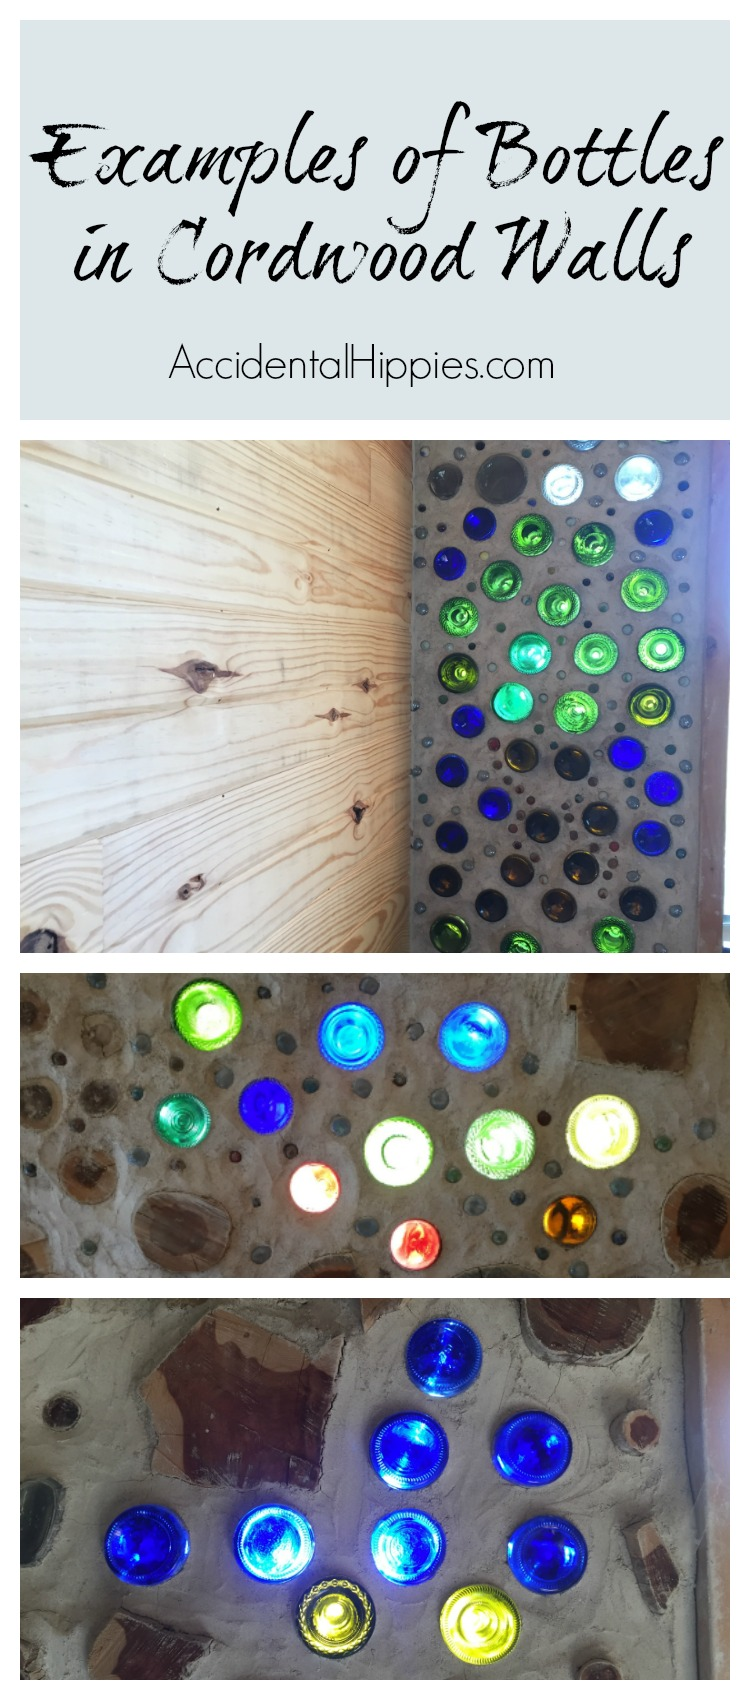 Examples of bottles in cordwood walls. Learn how we did it in this guide.